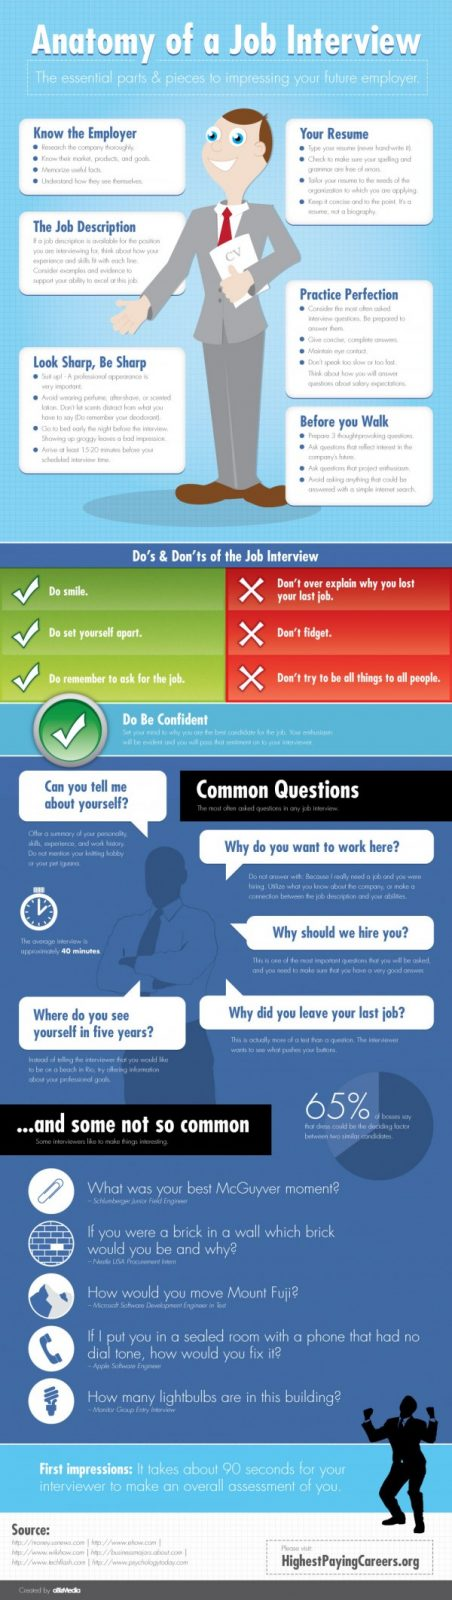 Anatomy of a Job Interview Infographic 36